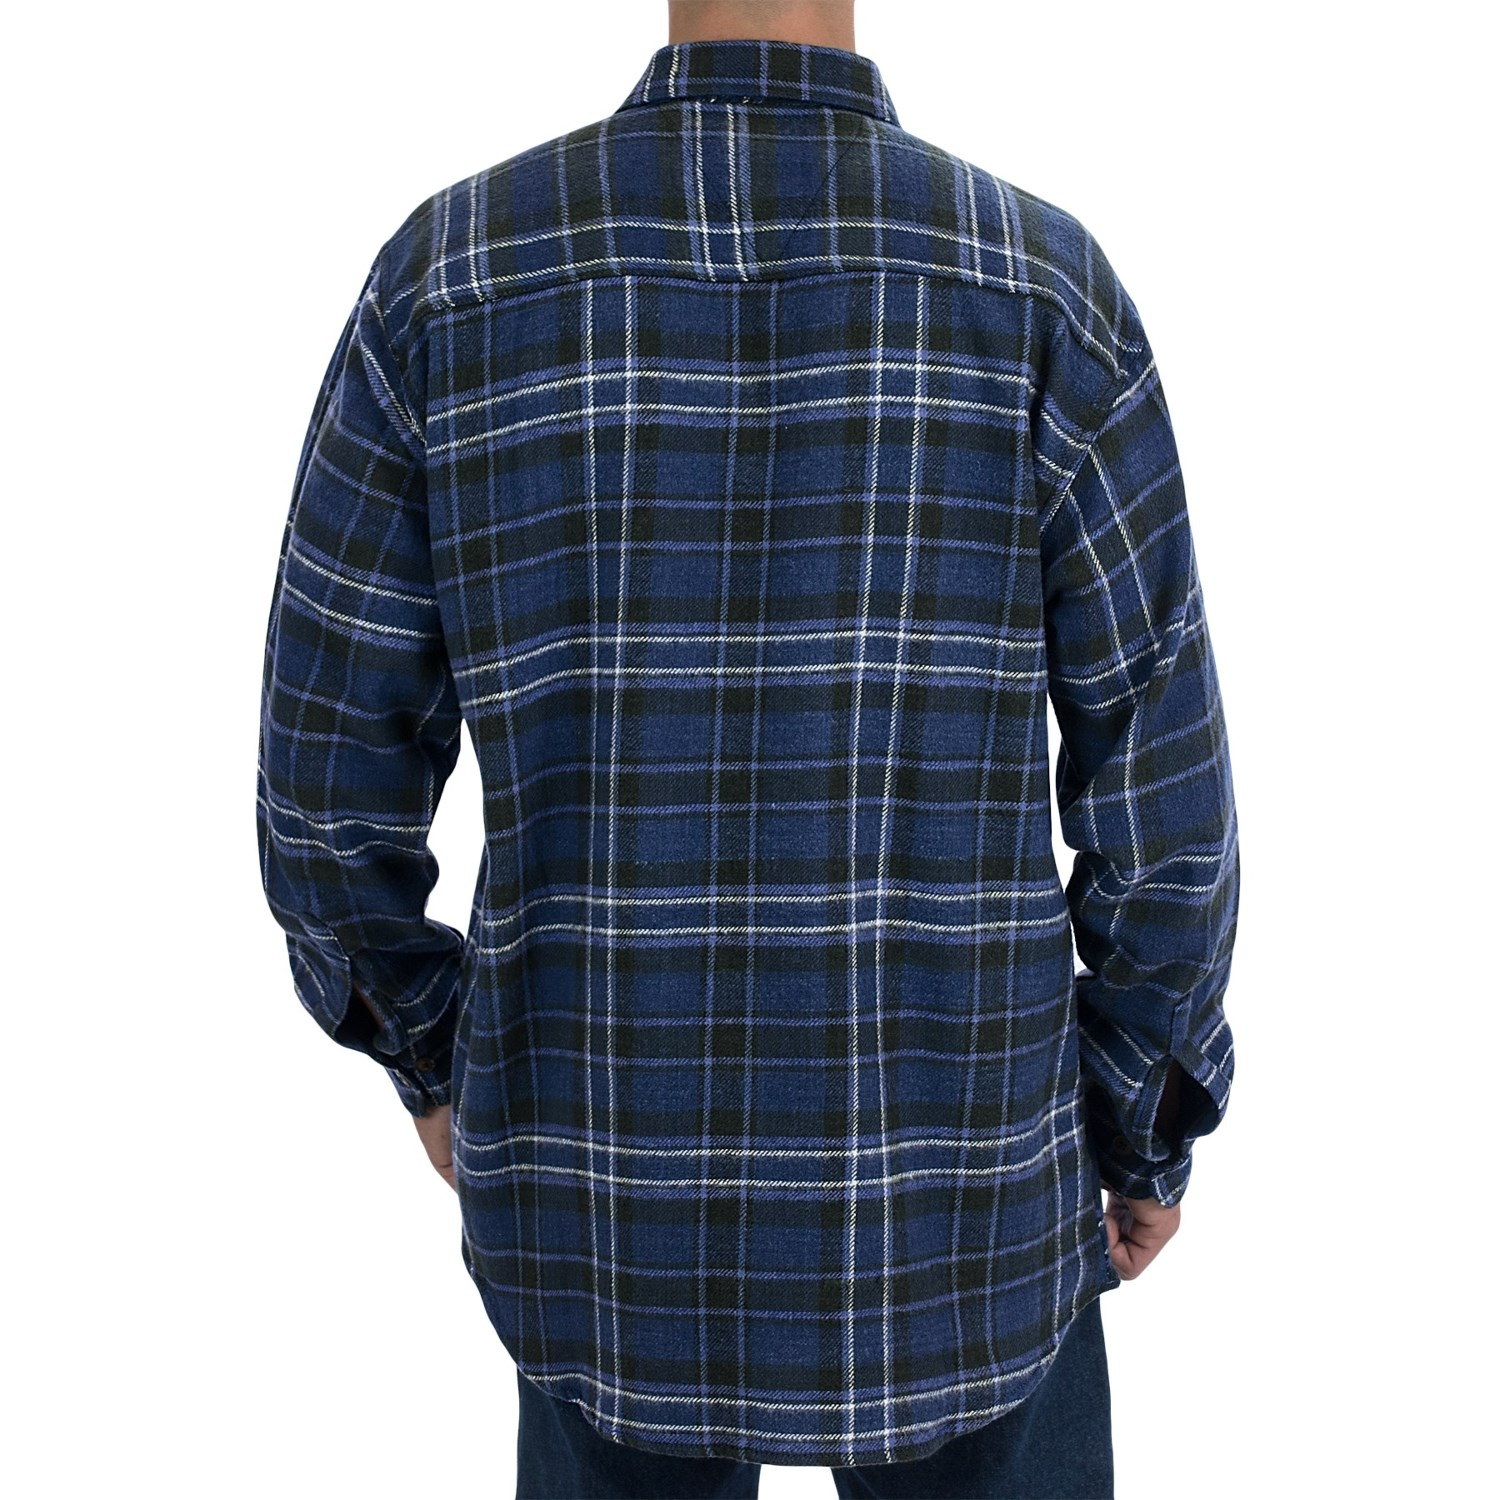 Canyon guide outfitters juneau brawny plaid shirt for men for Long plaid flannel shirt